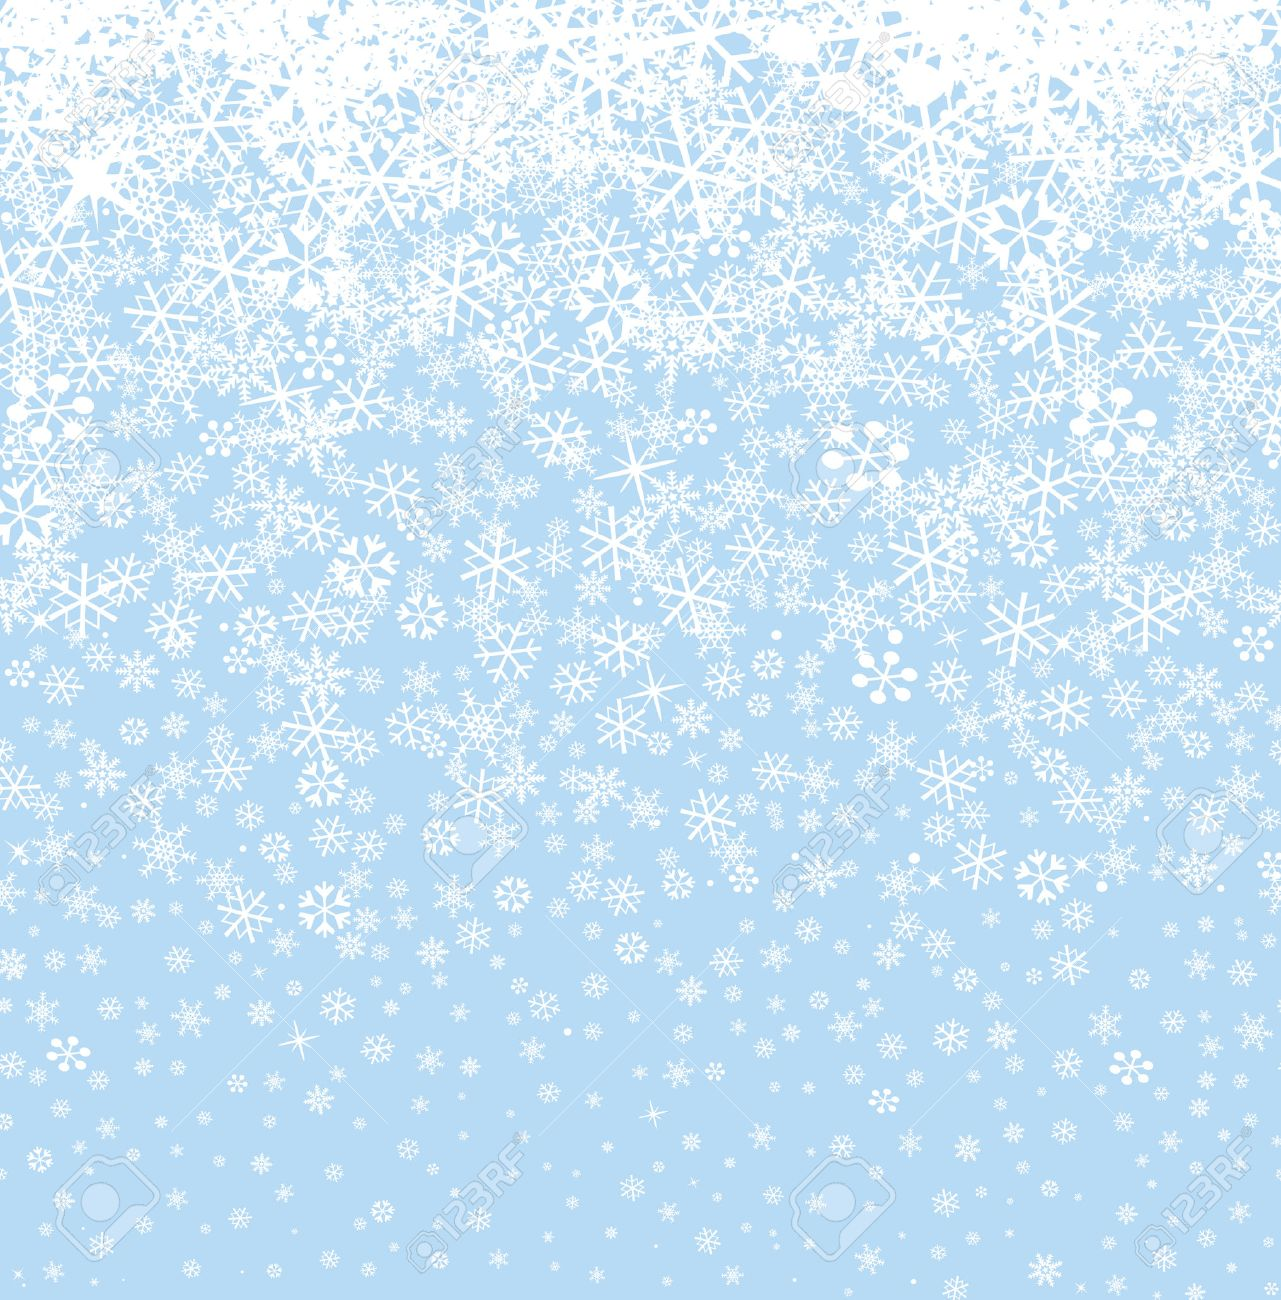 Winter Scene With Snowy Border Royalty Free Cliparts, Vectors, And ...